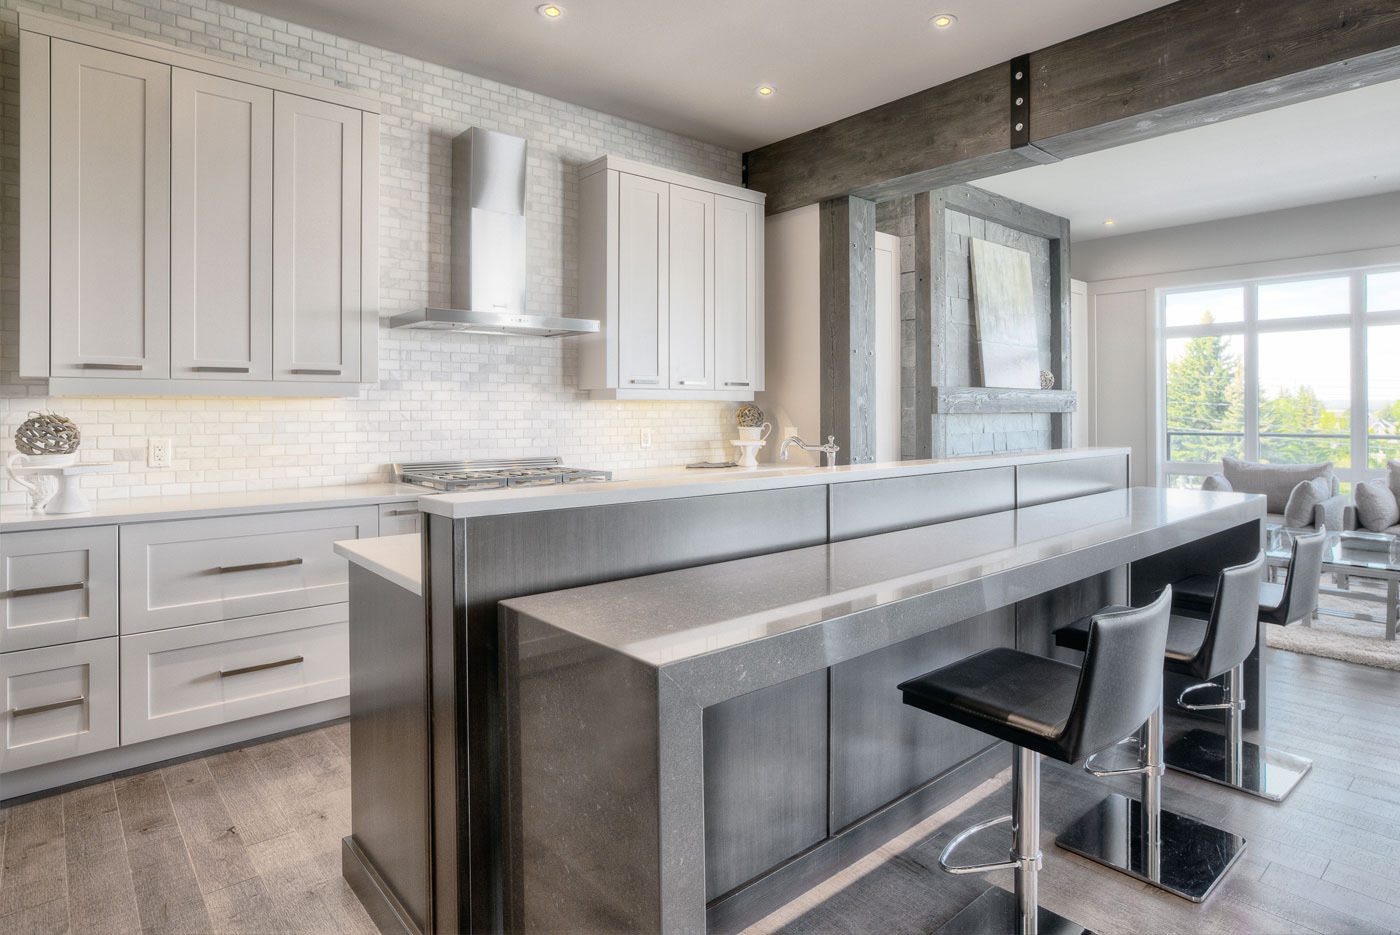 Dramatic two-toned kitchen that's sleek, modern and urban, available at Superior Cabinets